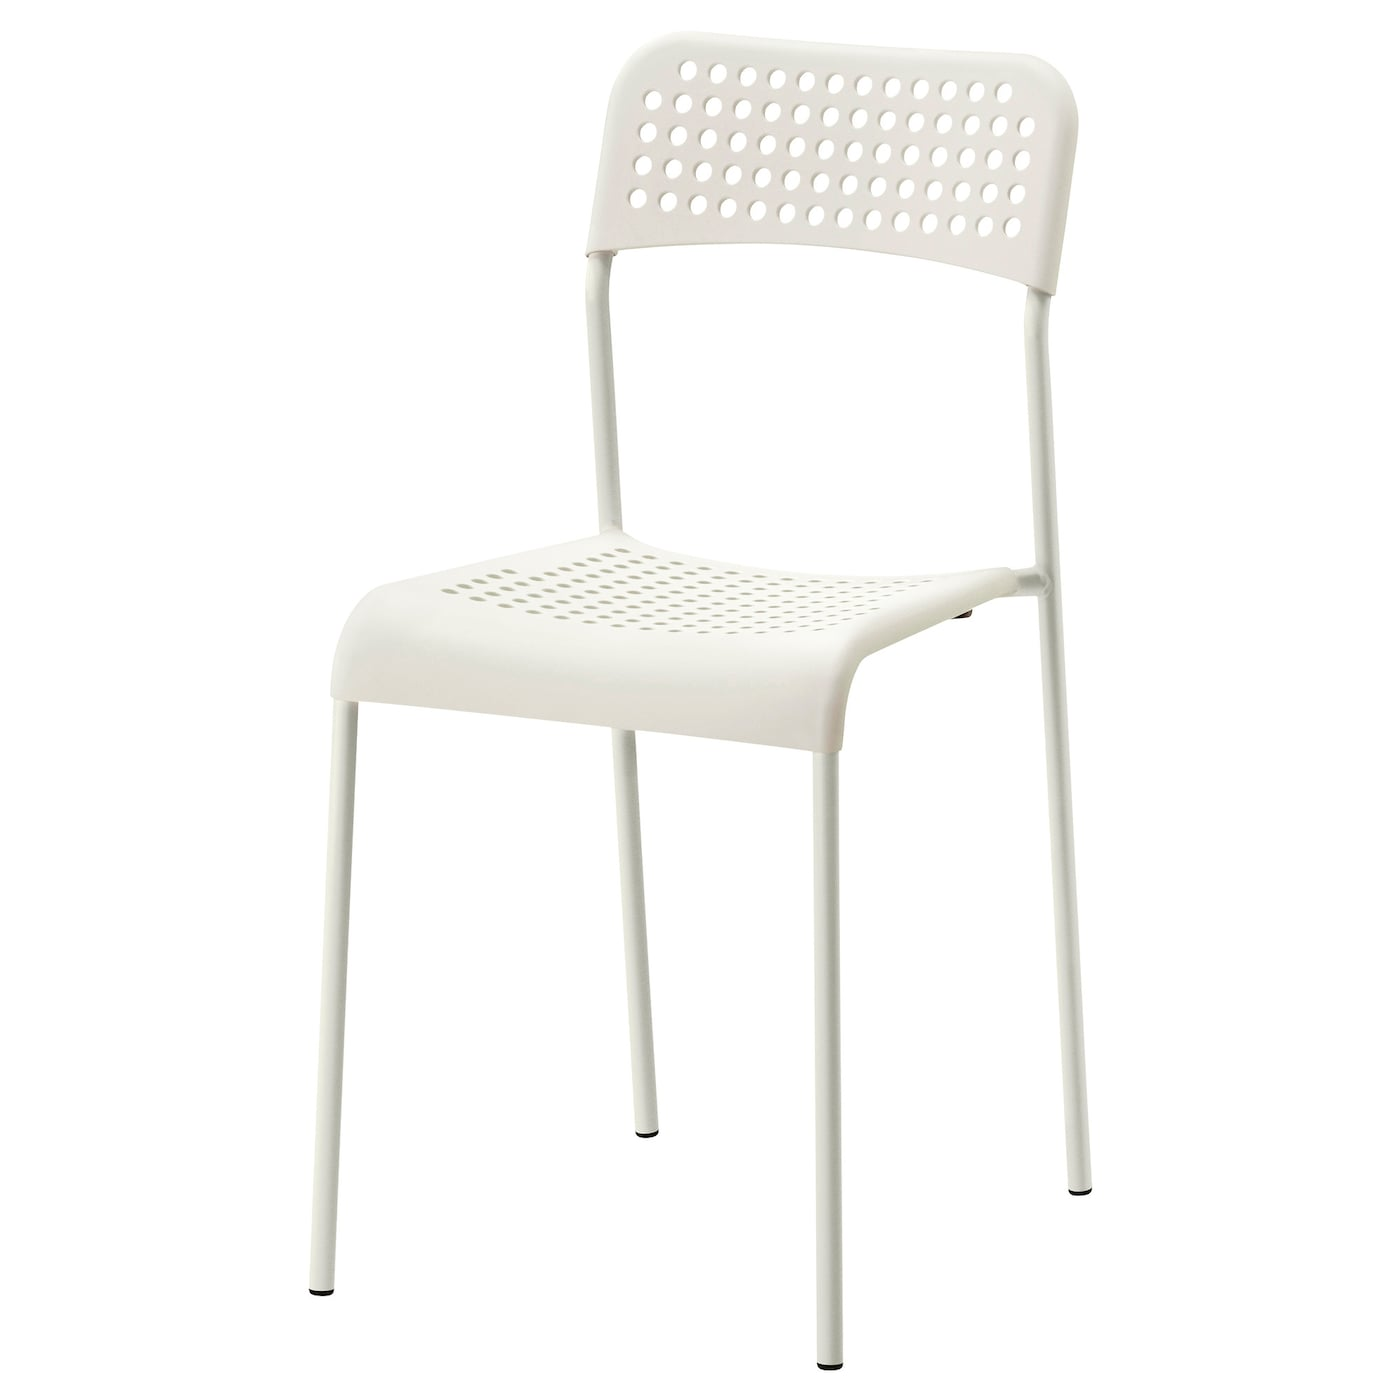 IKEA ADDE chair You can stack the chairs, so they take less space when you